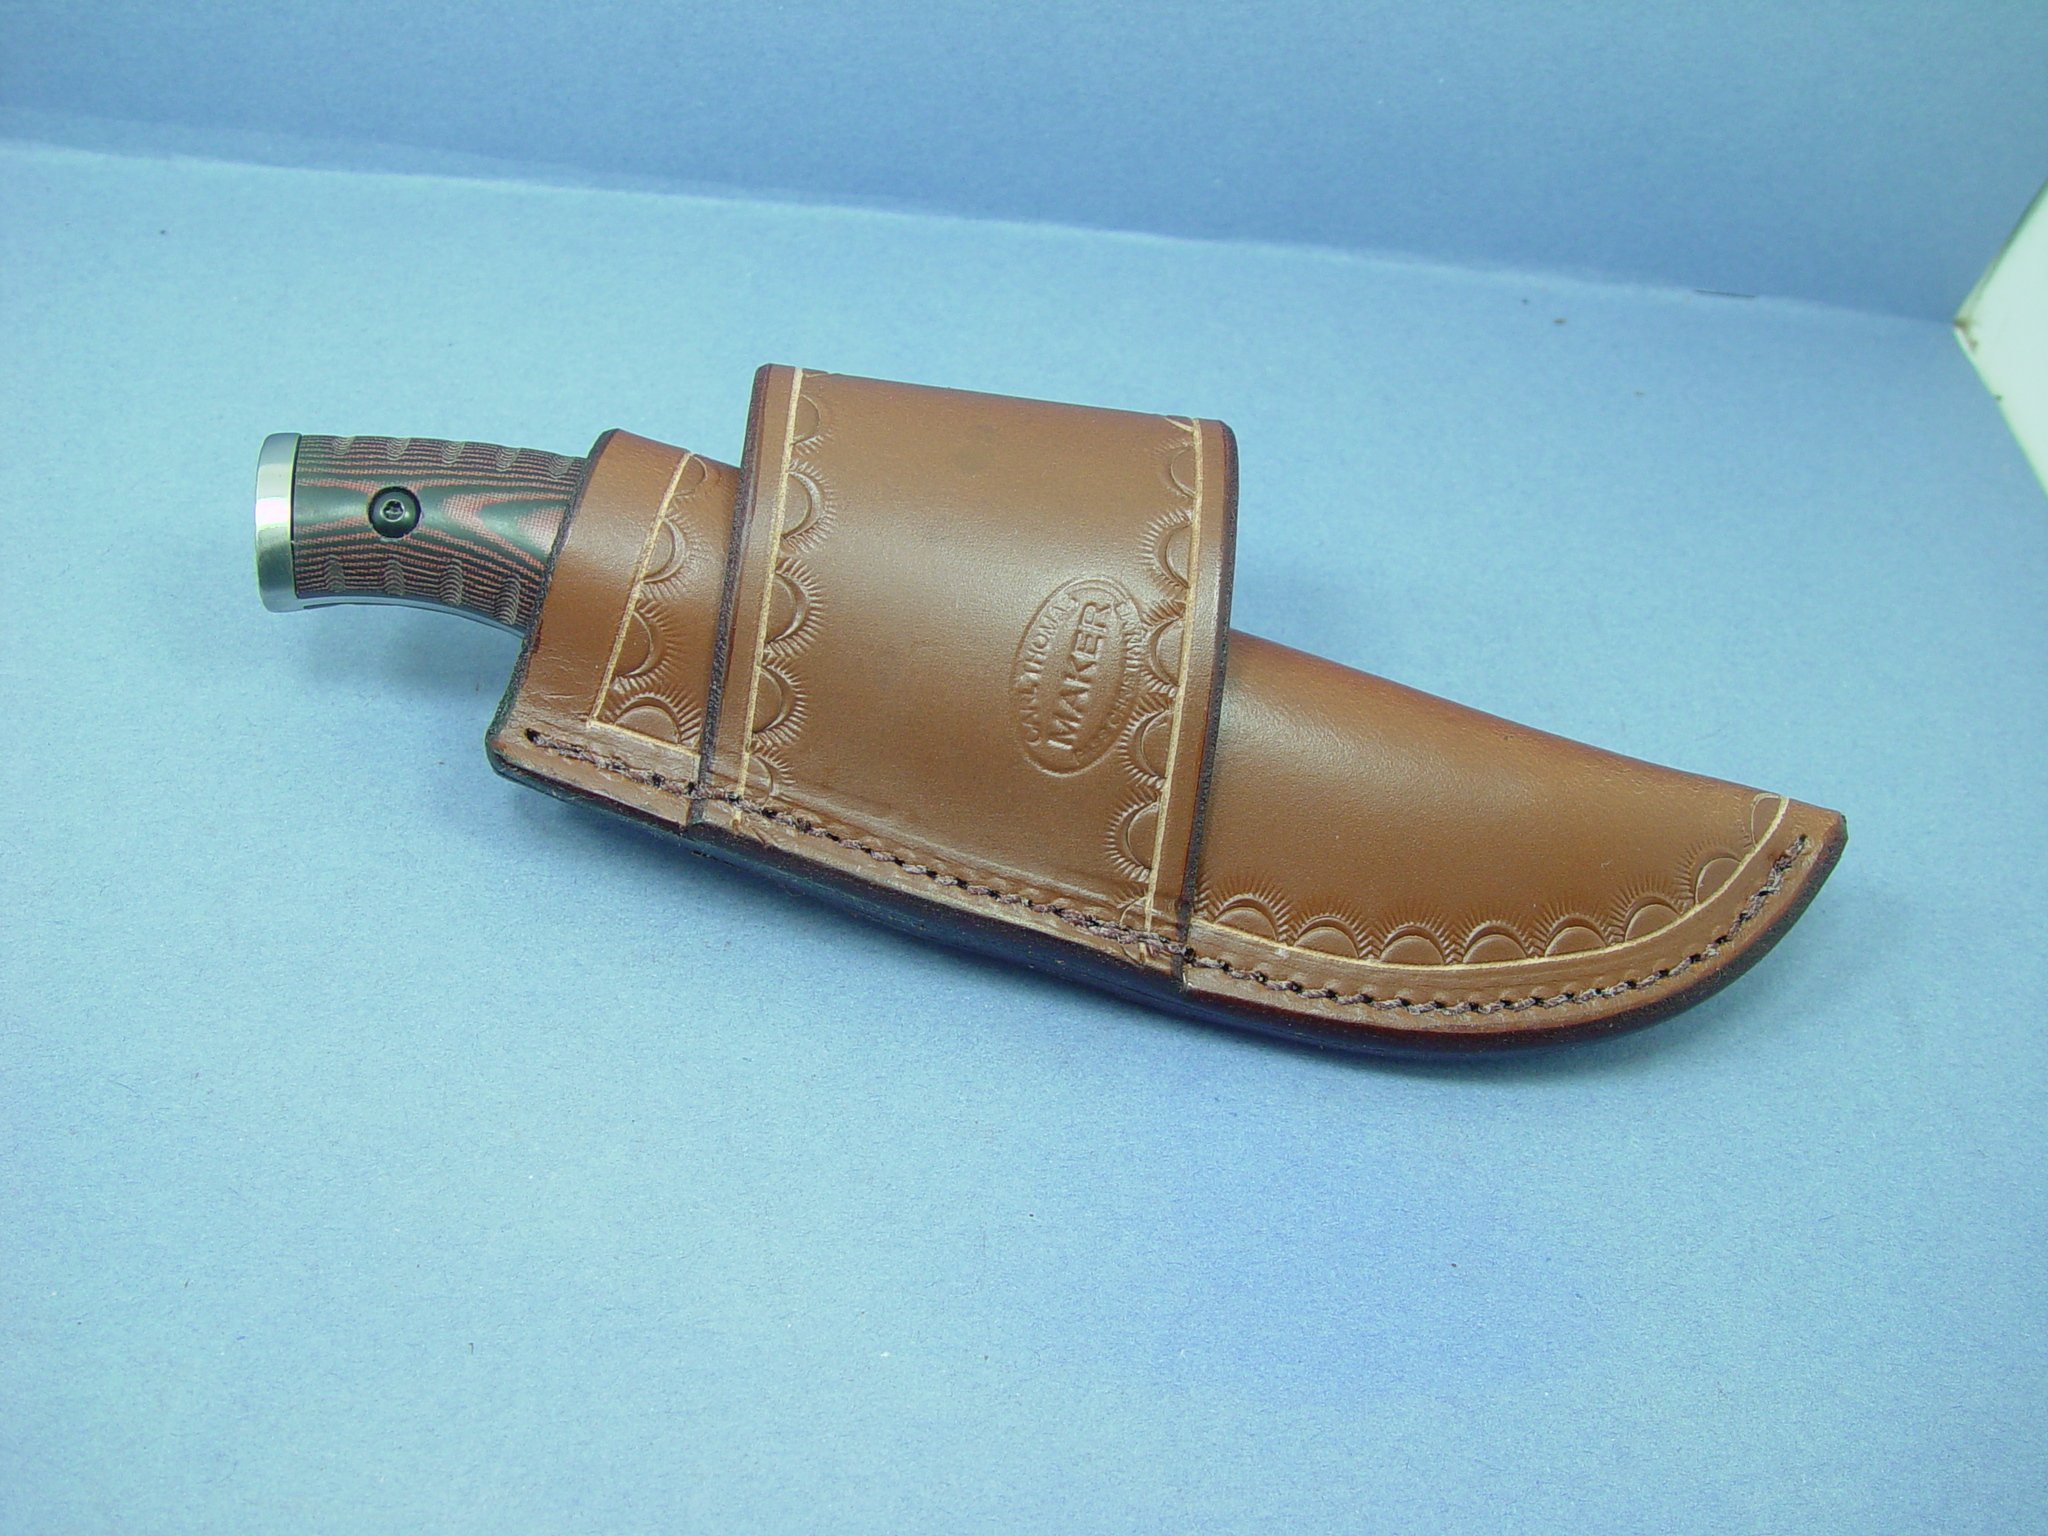 Buck Selkirk knife sheath For the small knife. by Buck Selkirk knife sheath